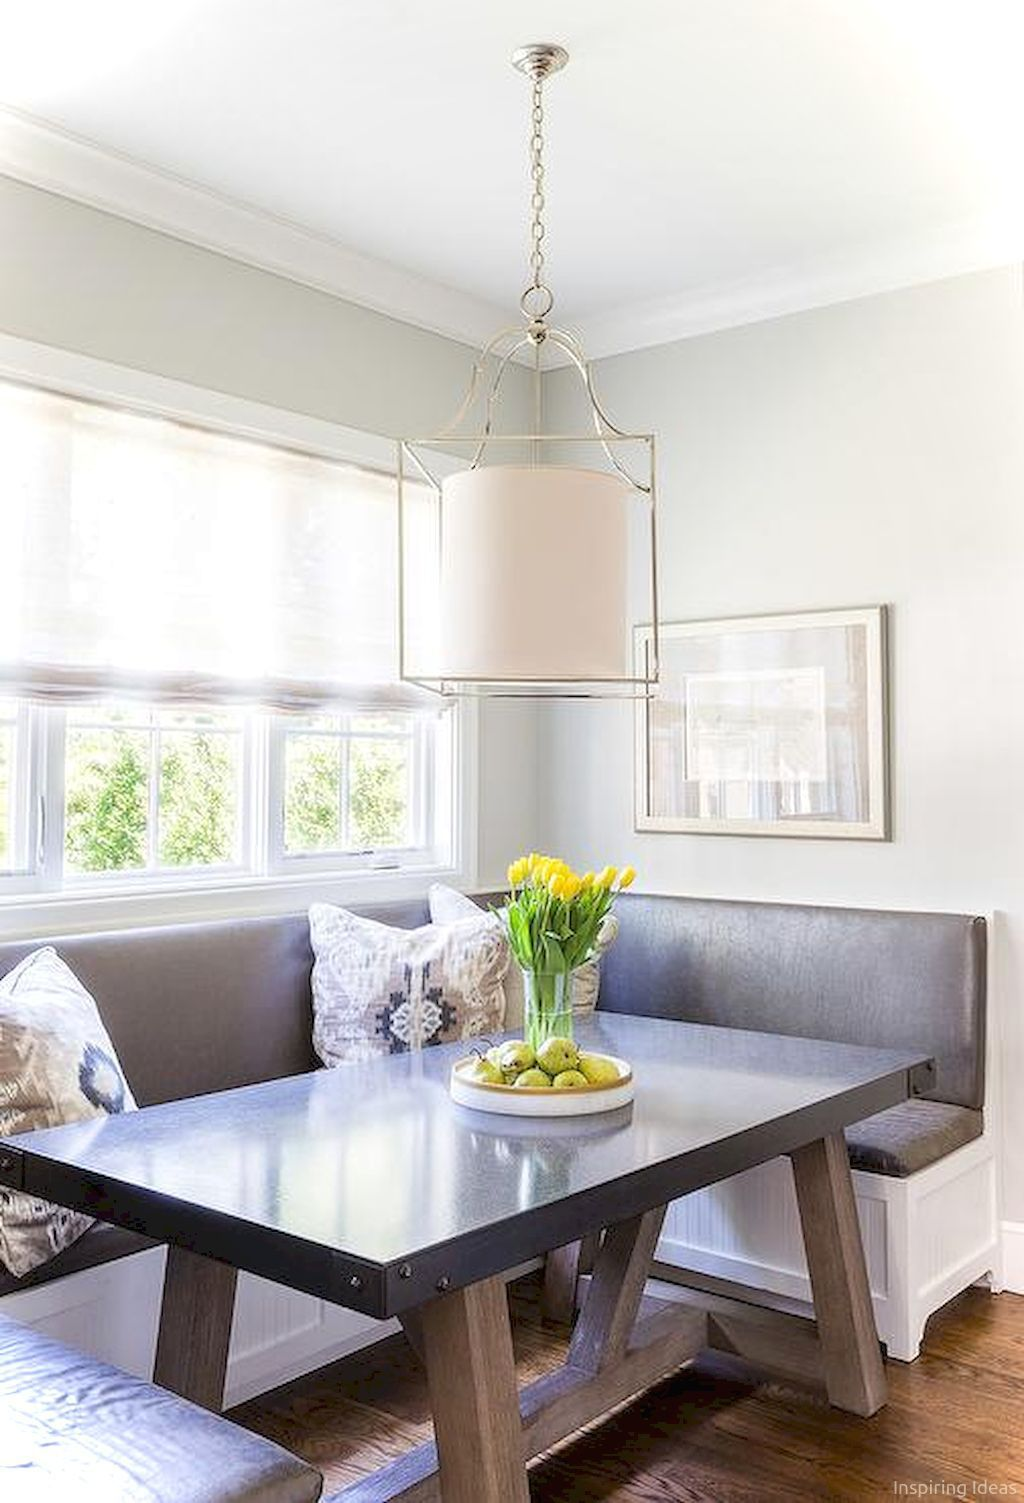 Awesome banquette seating ideas for your kitchen banquettes and